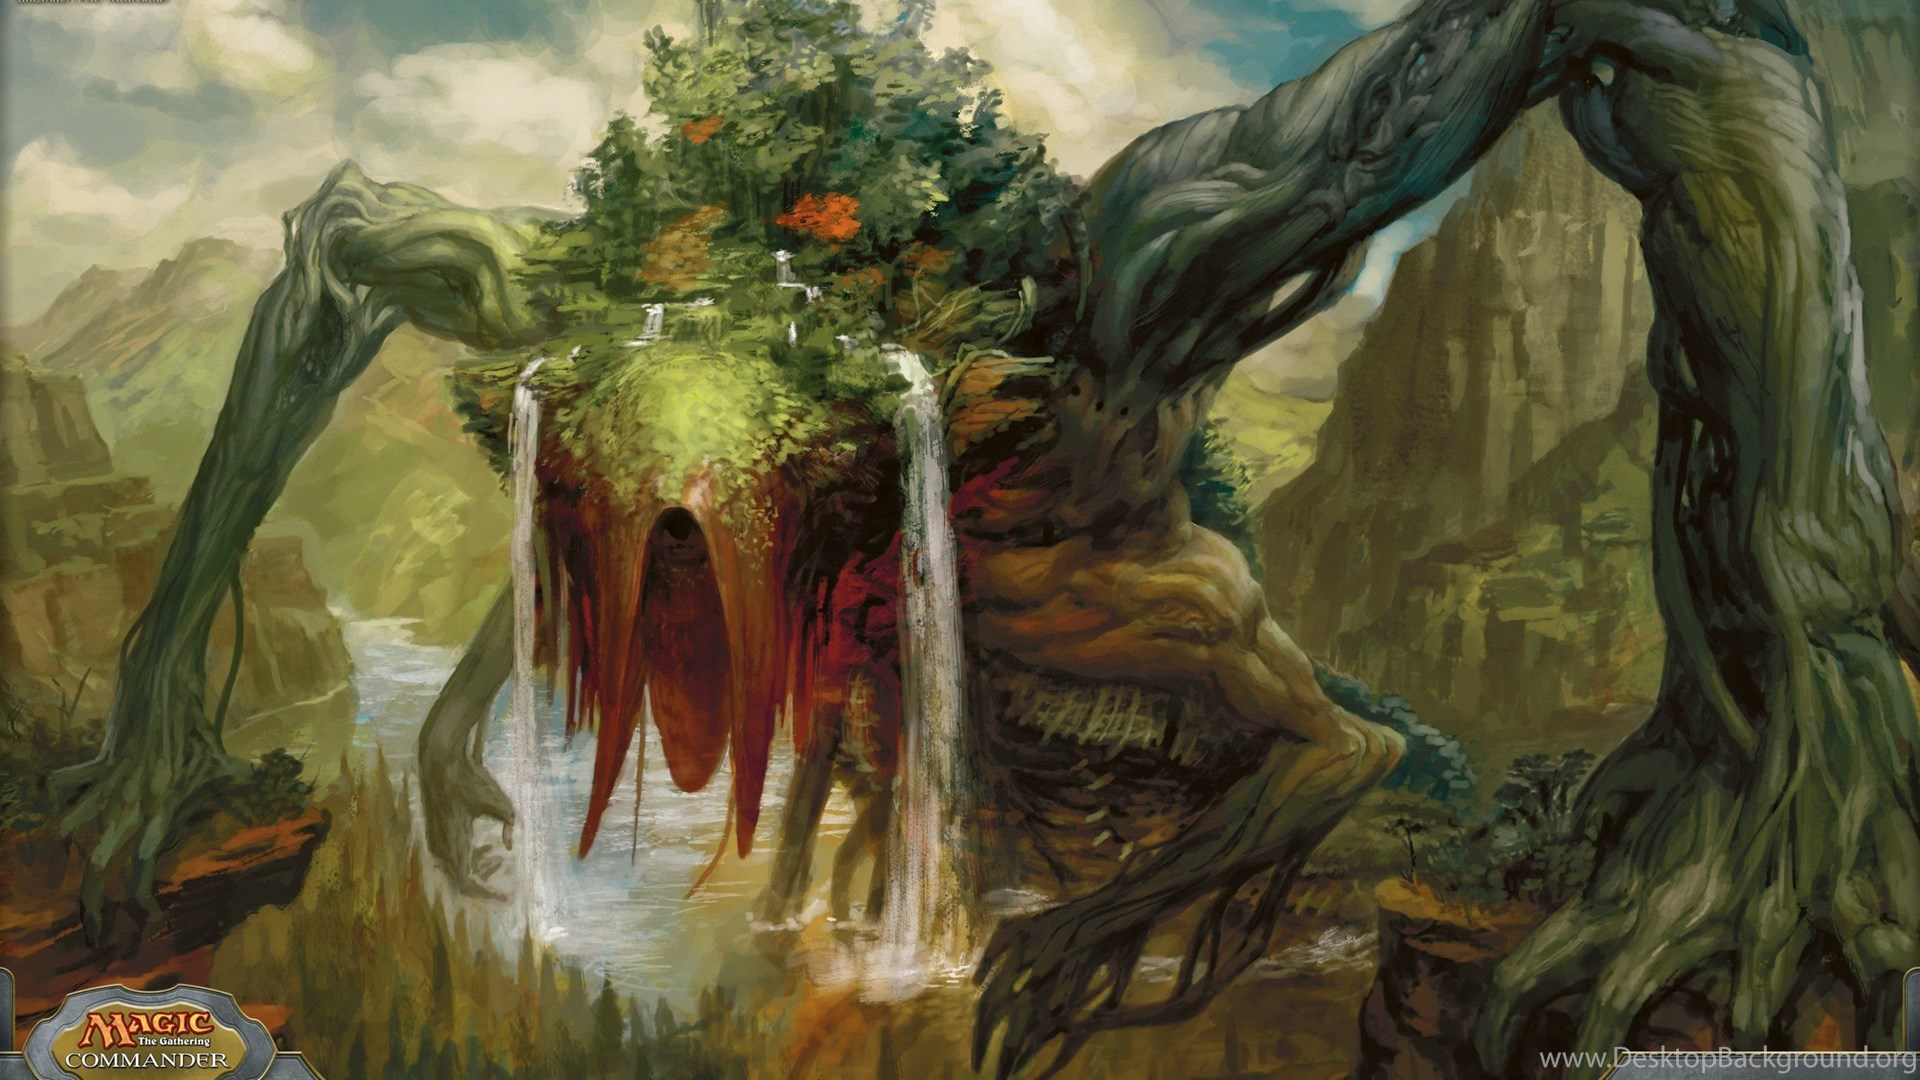 Magic The Gathering Fantasy Art Wallpapers Desktop Background